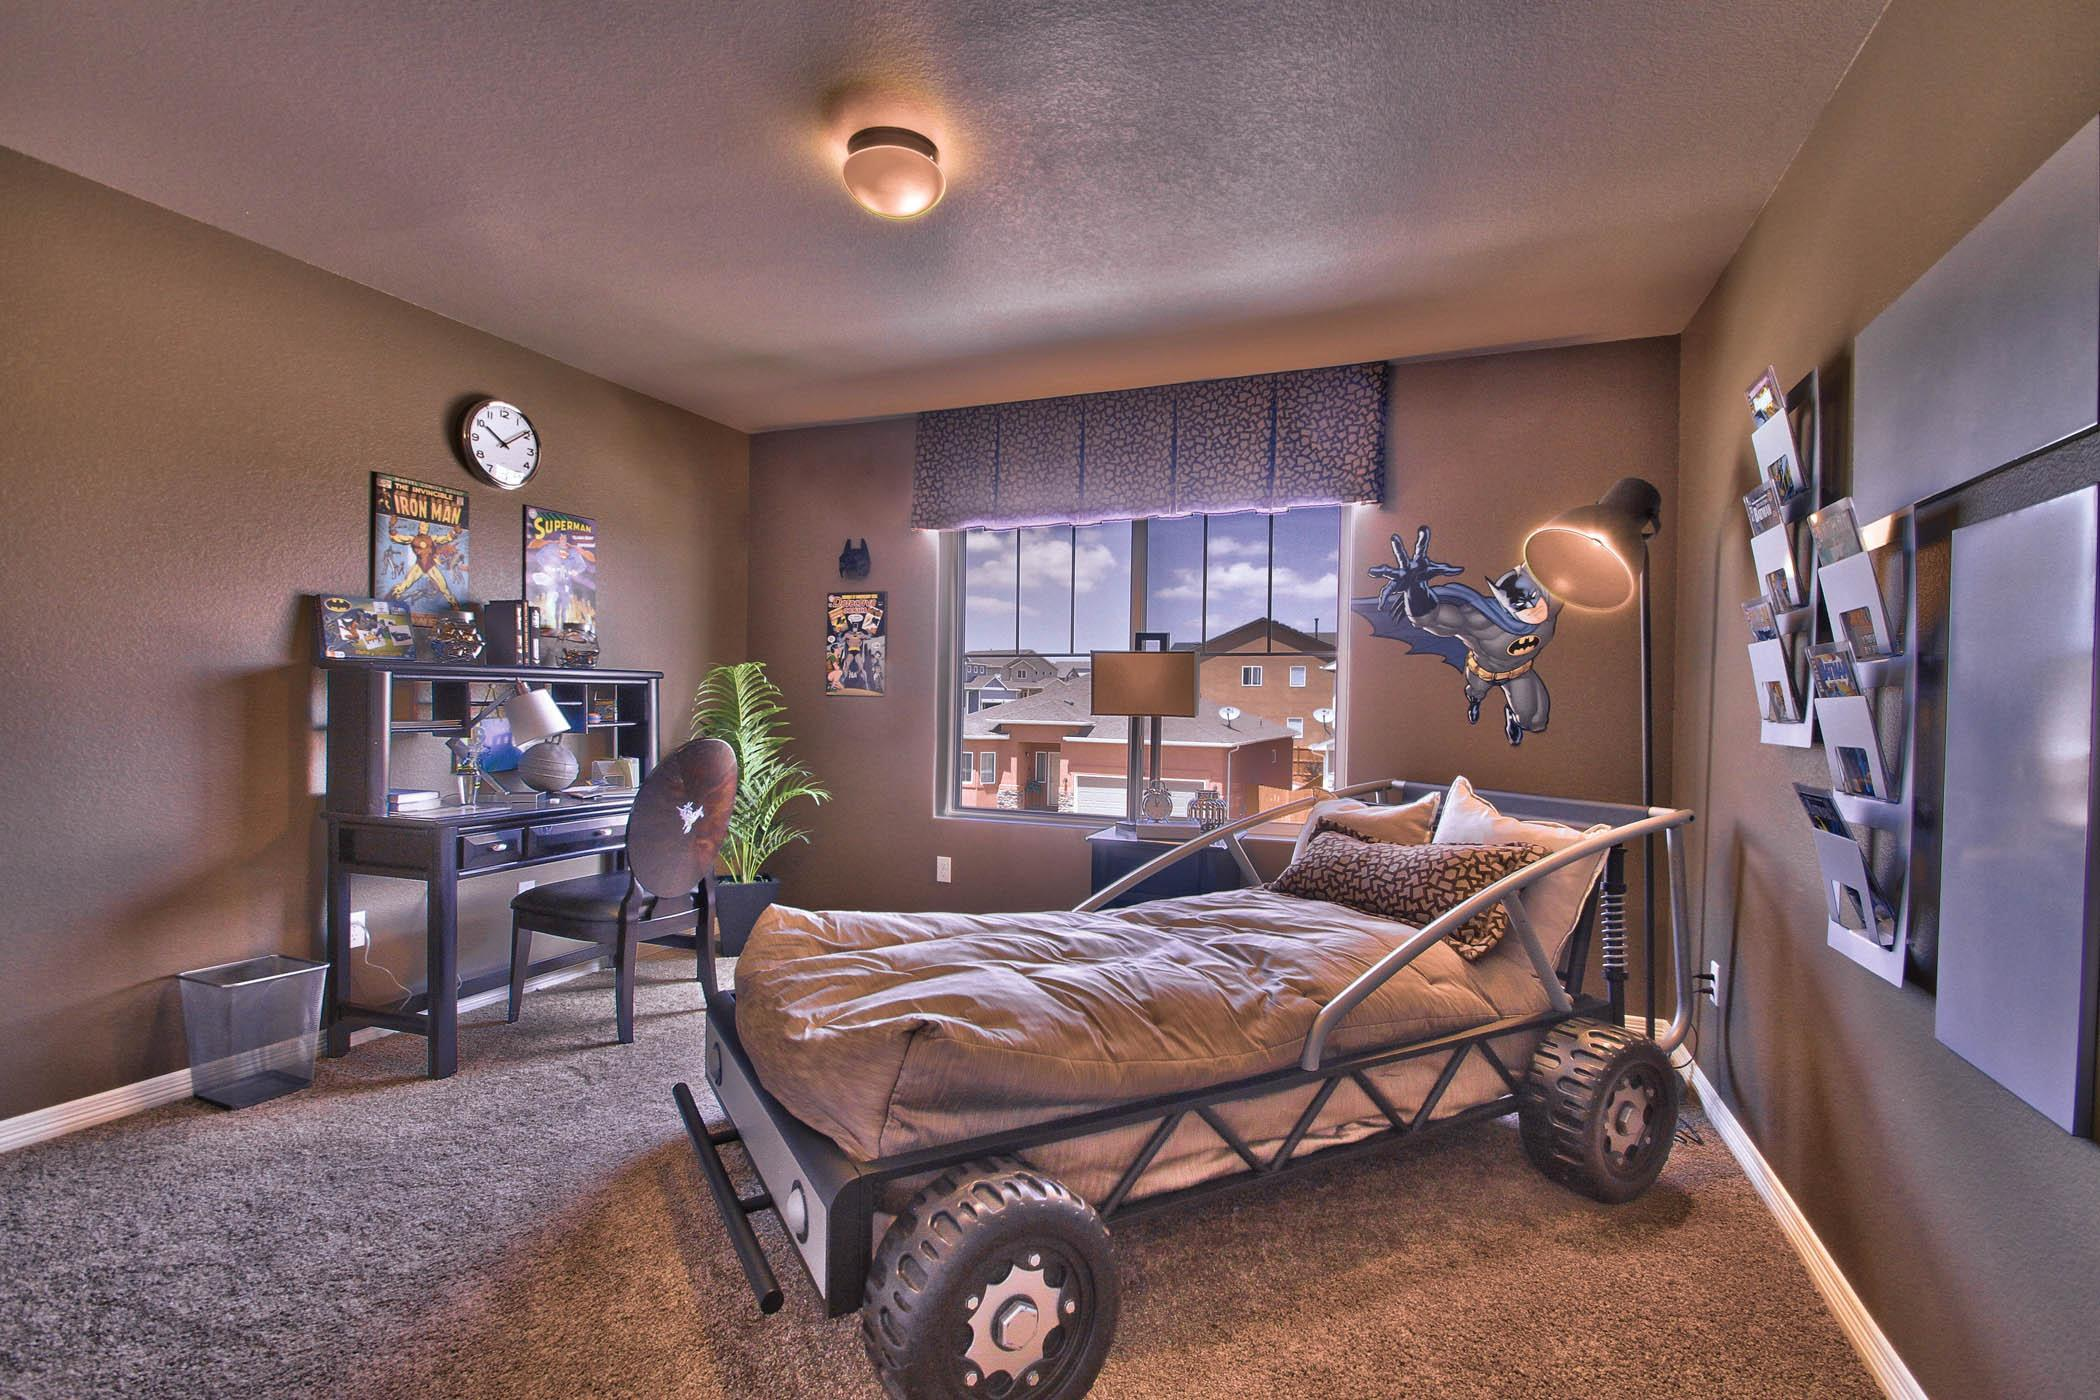 Bedroom featured in the Pikes Peak - Upper Level Master (Slab) By Reunion Homes